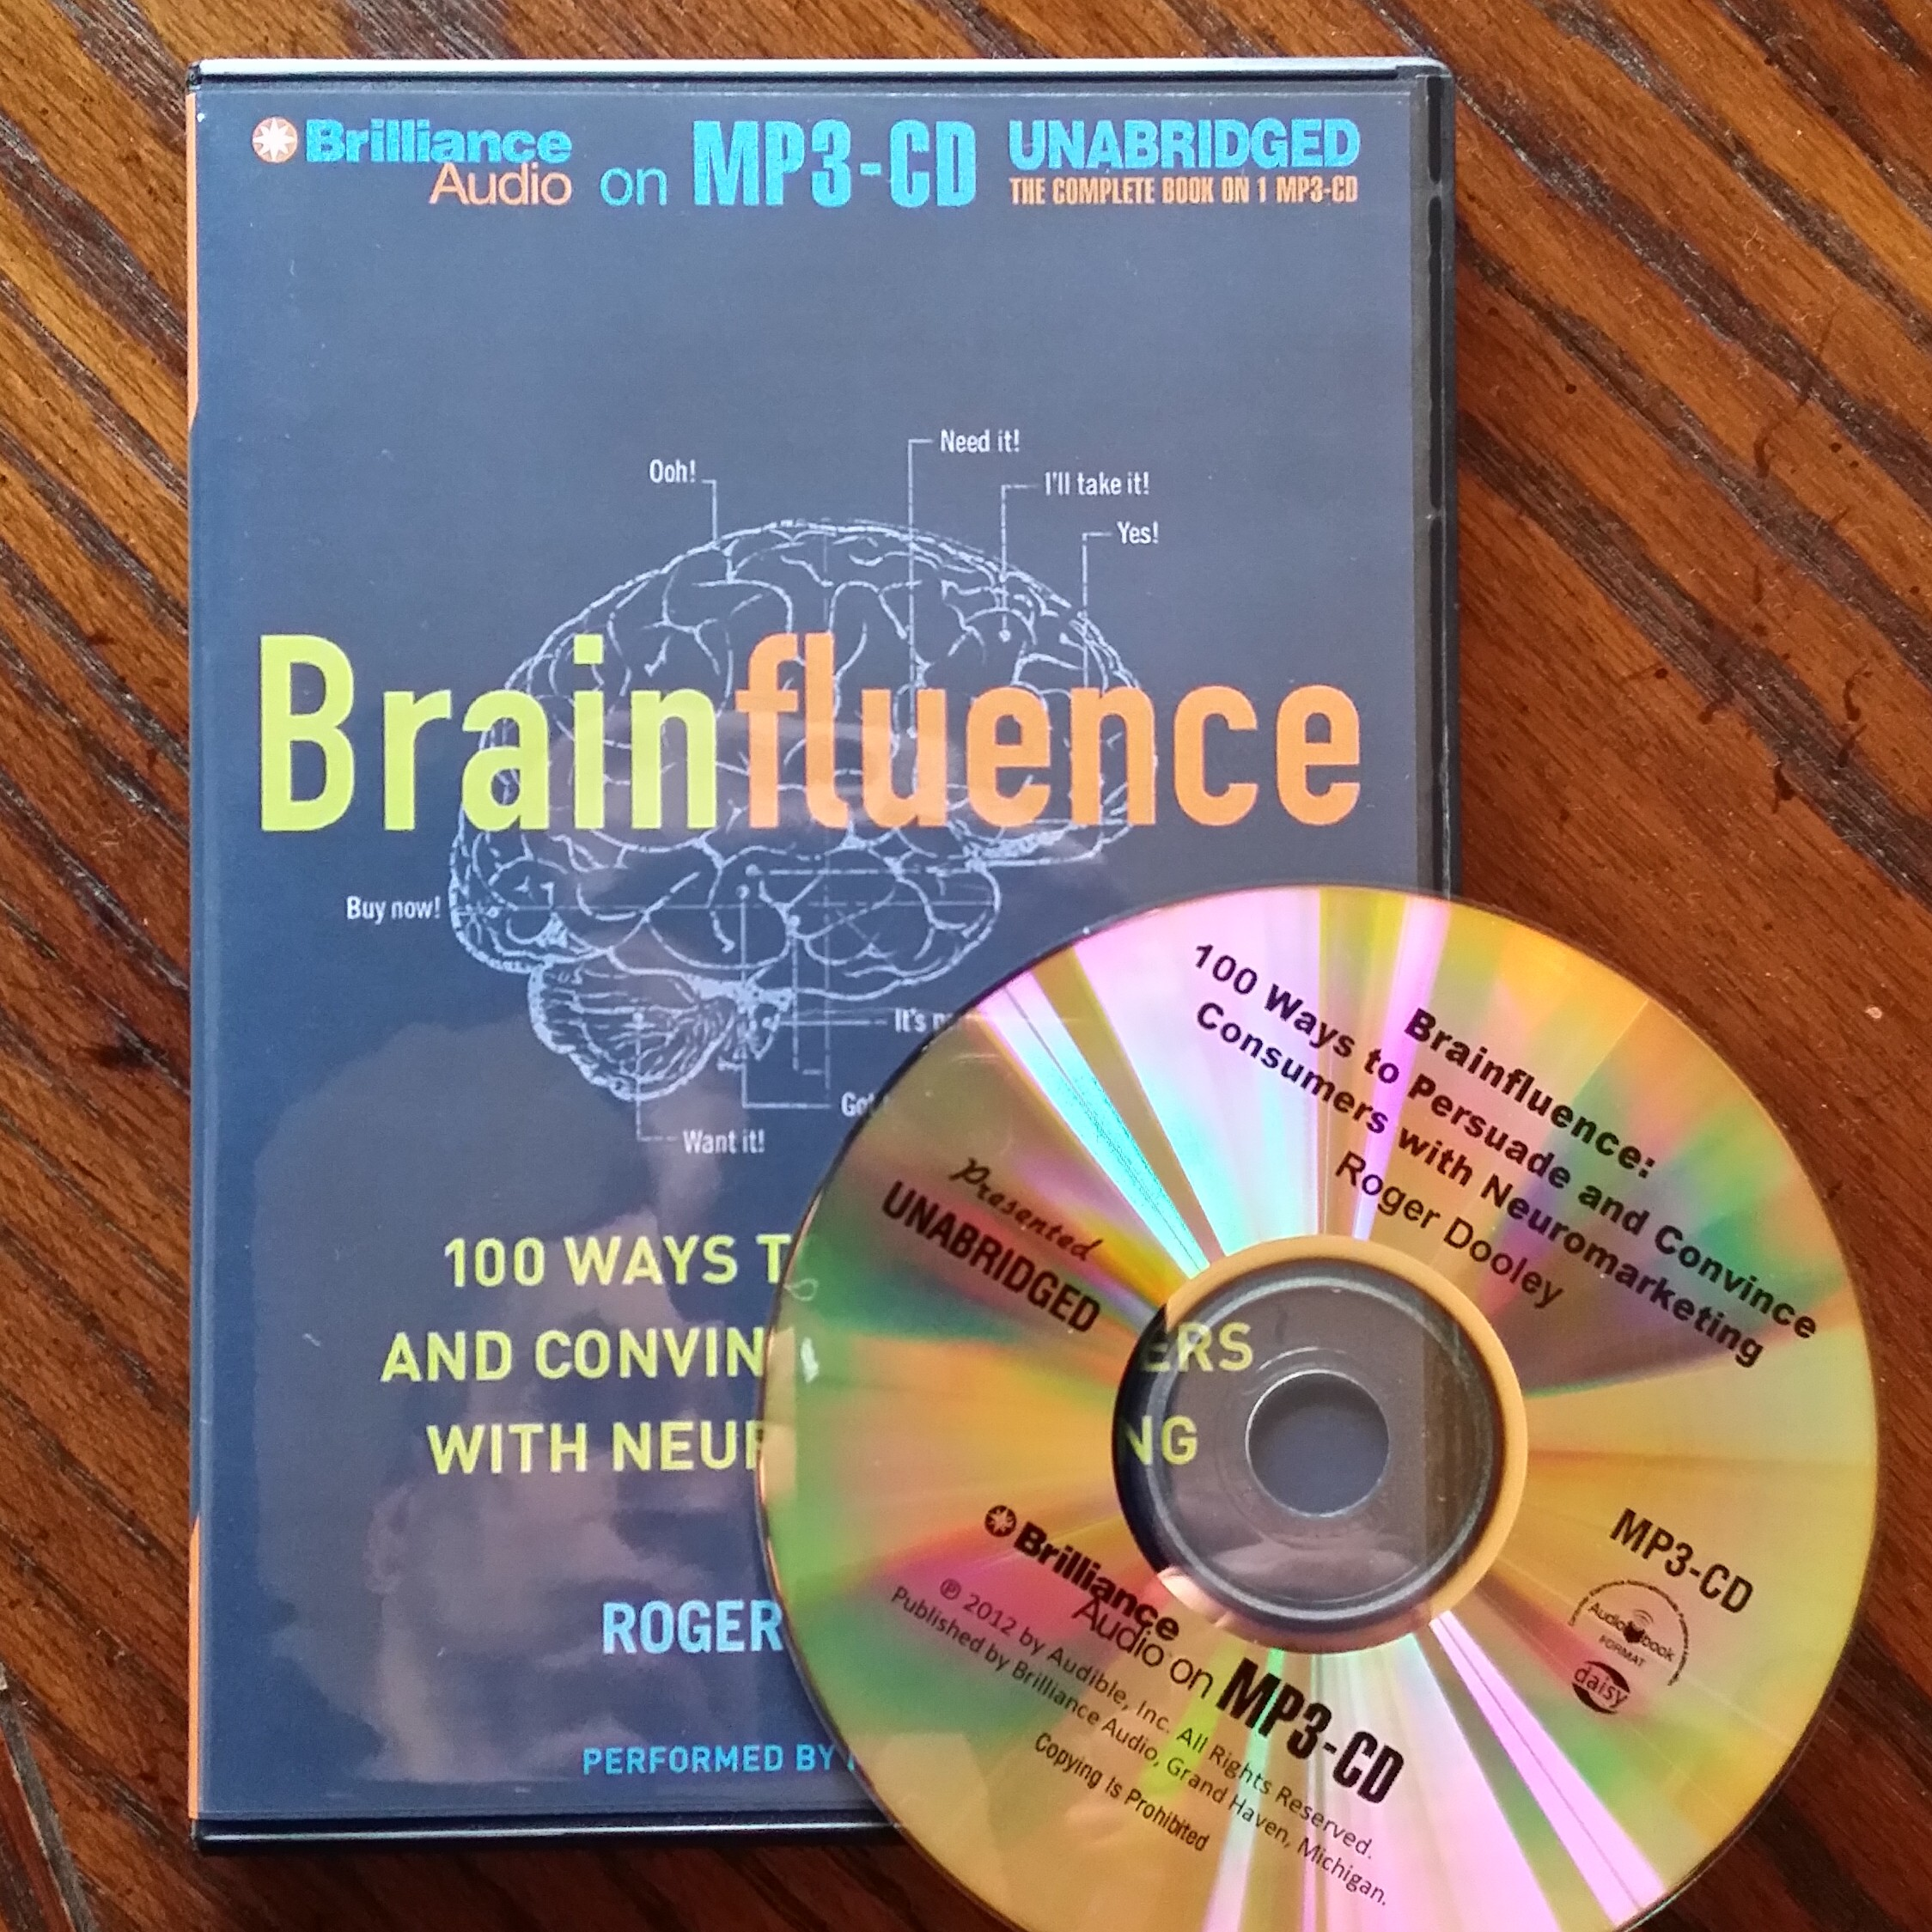 Brainfluence on MP3 CD